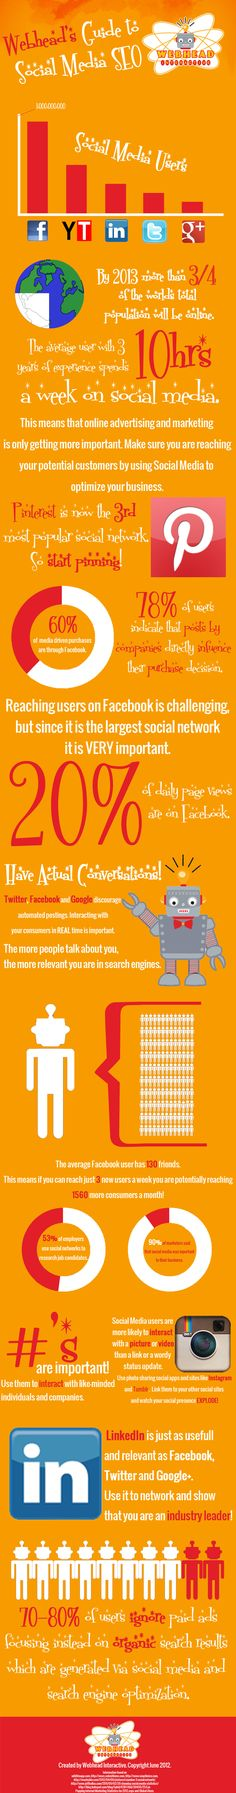 INFOGRAPHIC Social SEO I am so tired of Penguin and Panda updates. Aren't you? No SEO Forever - A Bestselling book on Amazon. http://getaccess.me/no-seo-forever-pinterest